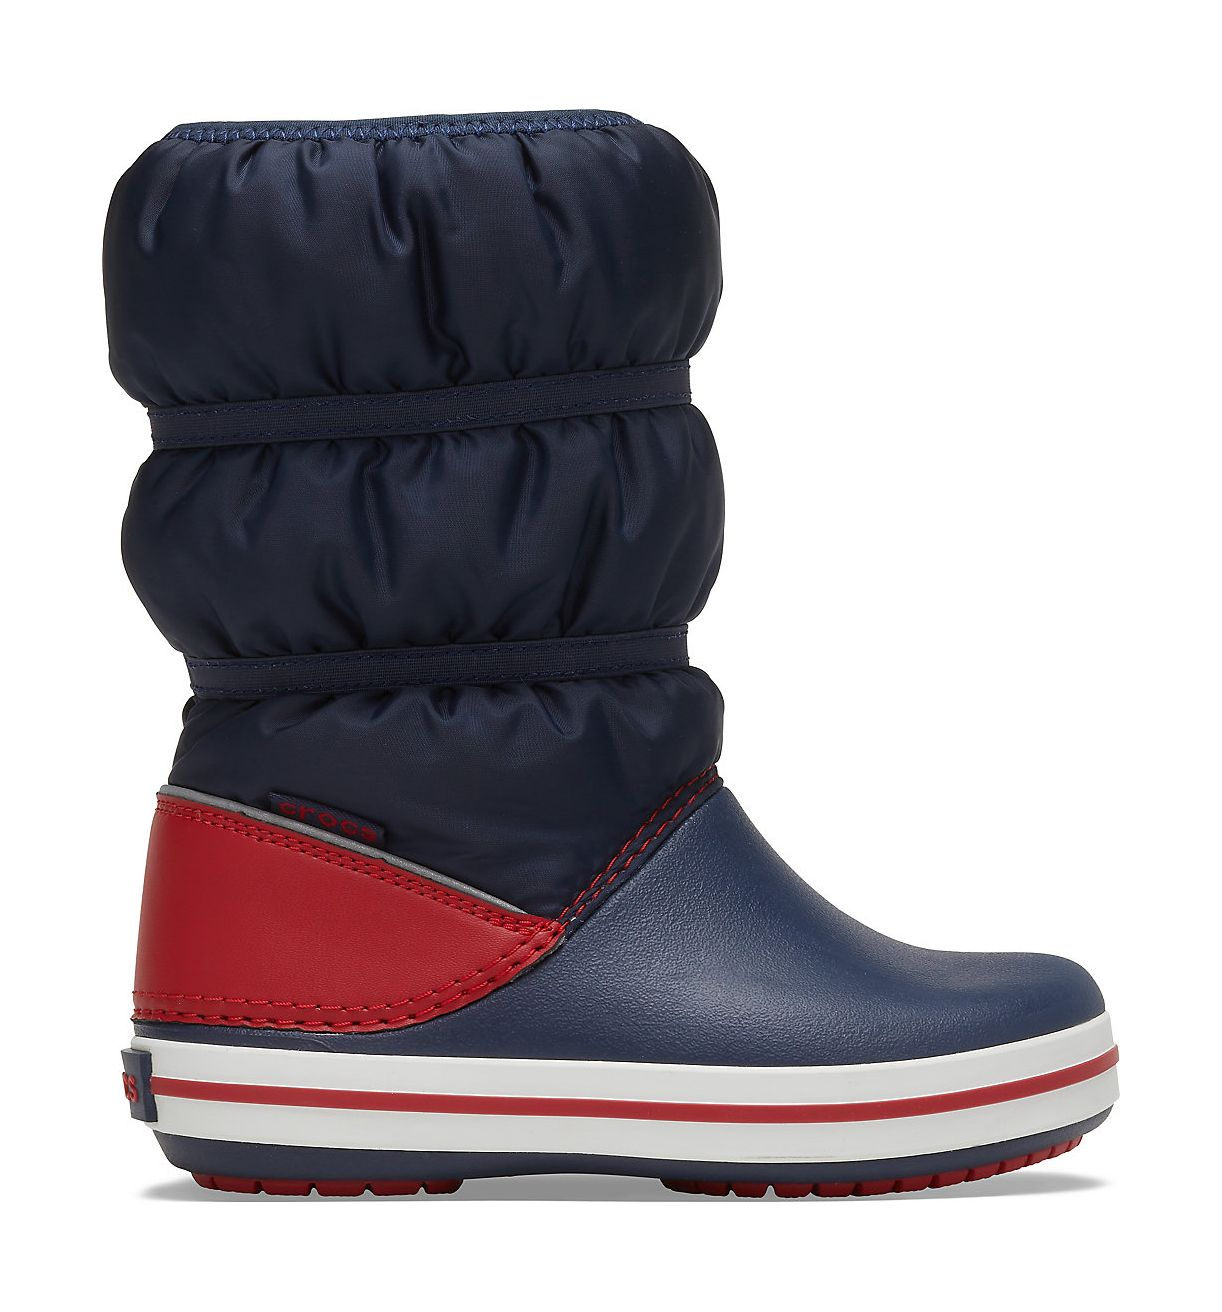 Crocs™ Crocband Winter Boot Kid's Navy/Red 30